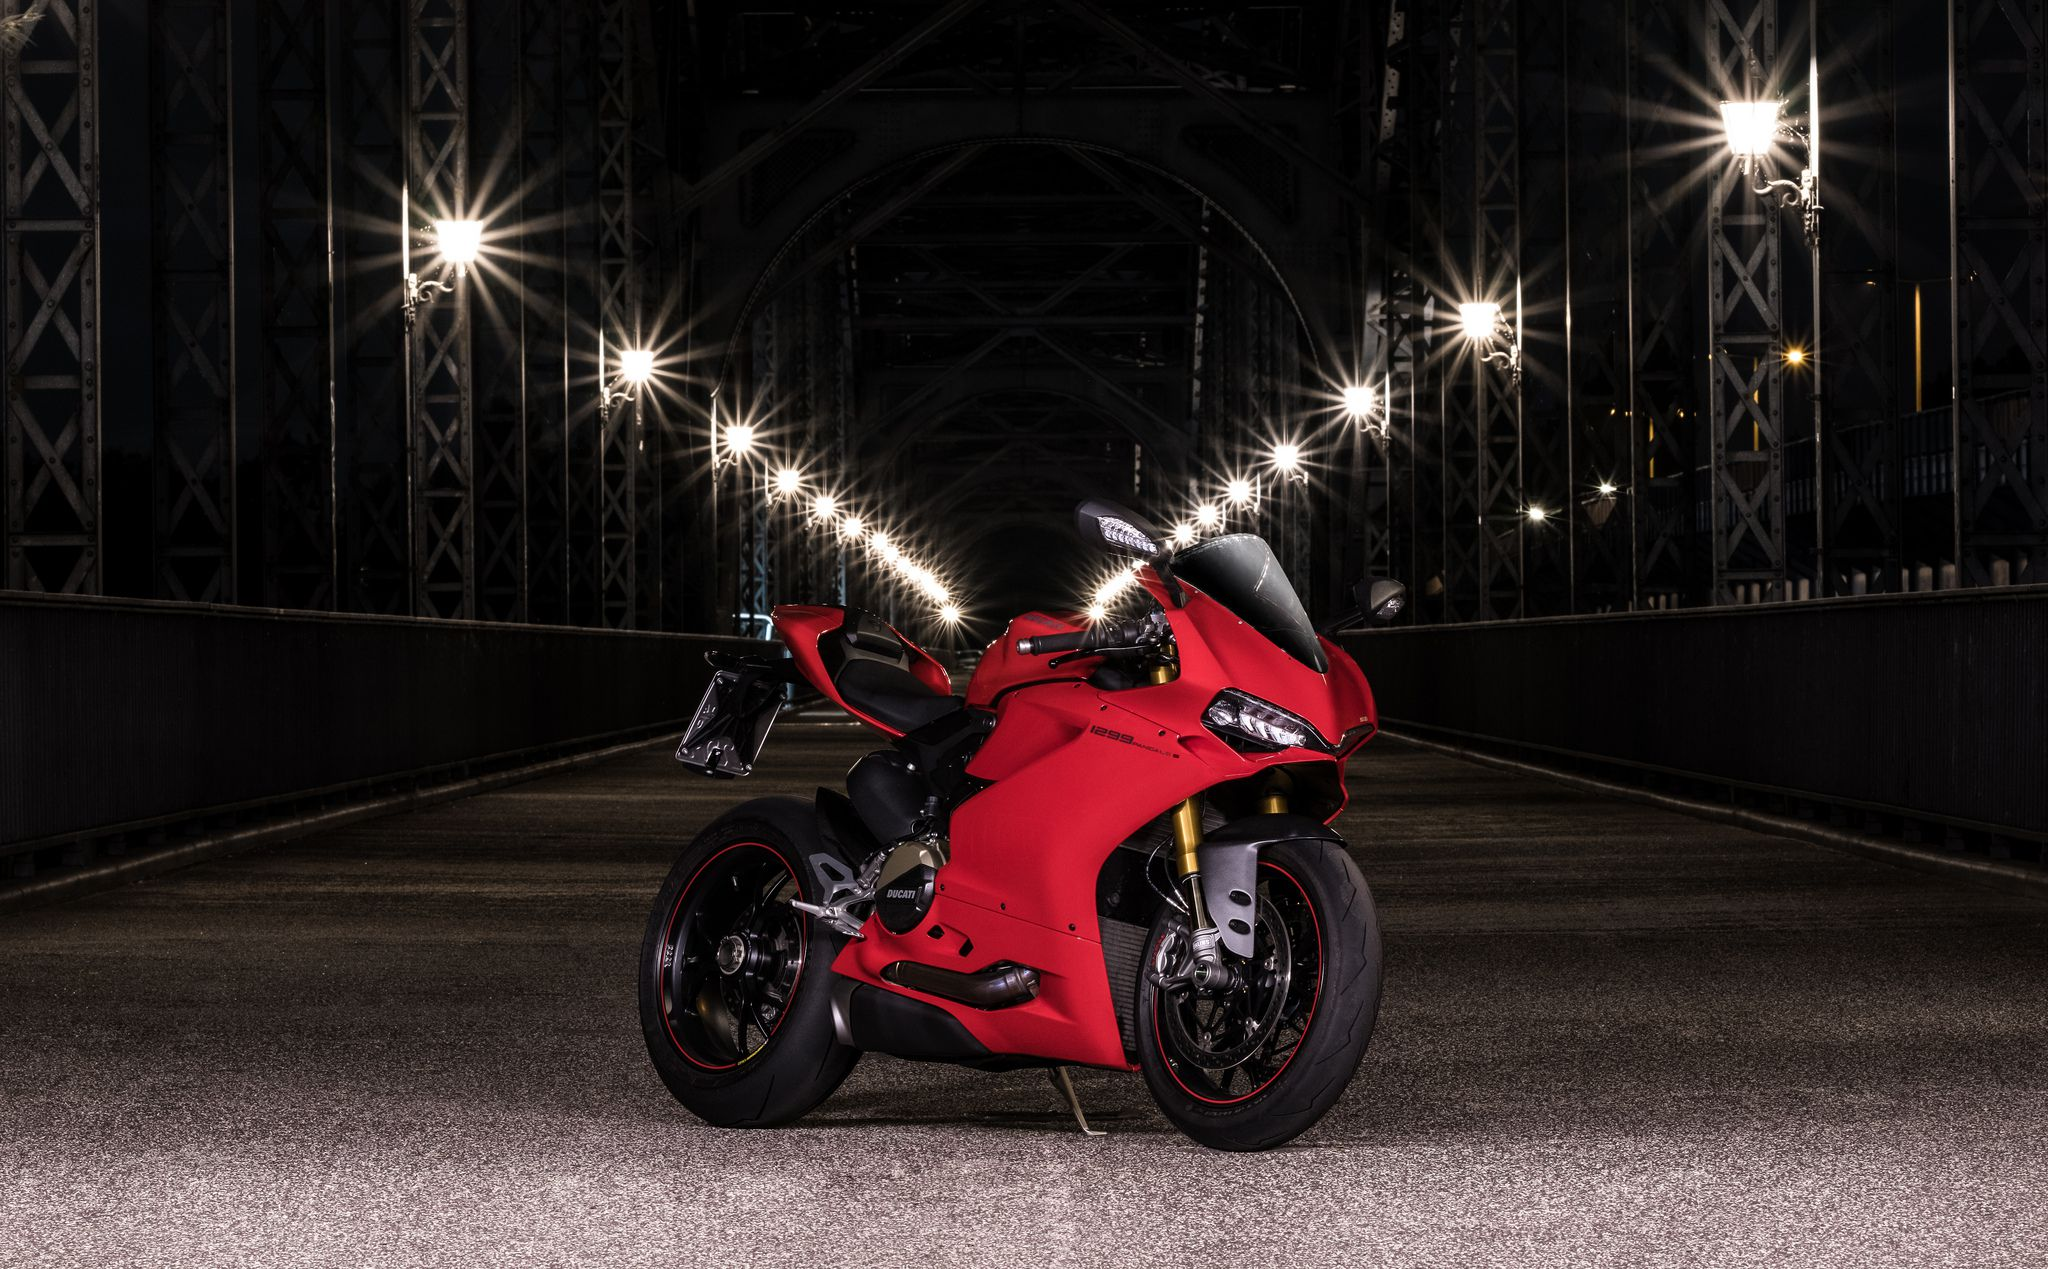 Ducati Panigale 1299s at night